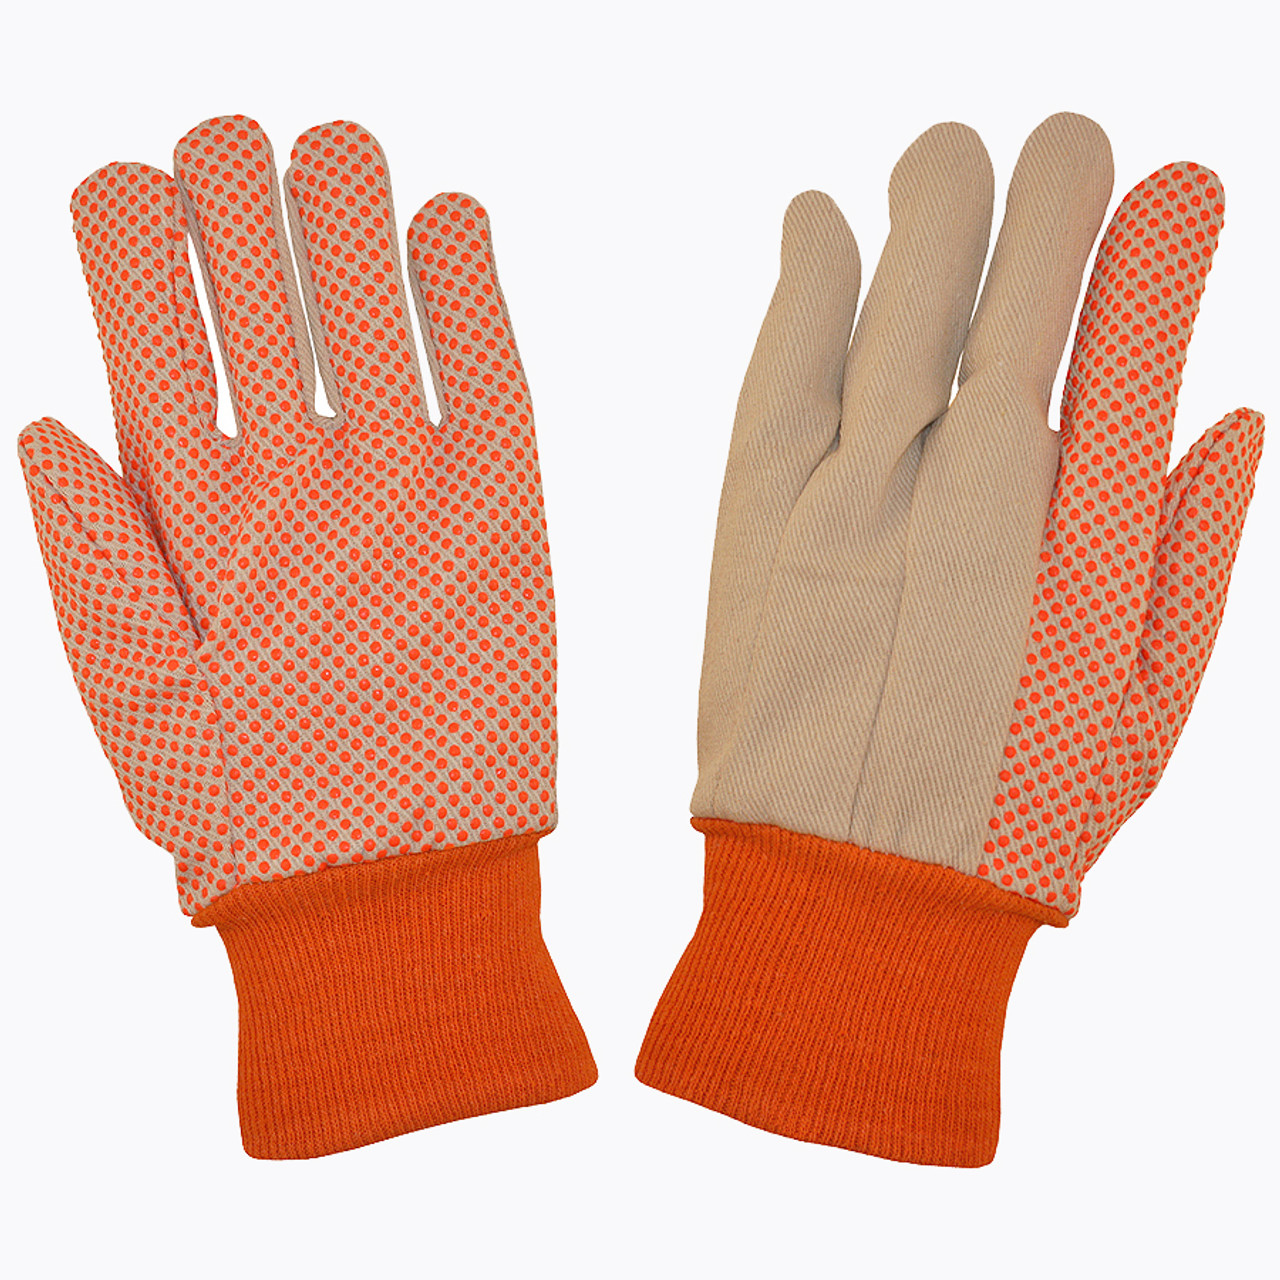 2670: 10 Oz Canvas/Orange PVC Dots Gloves - 12 Pack